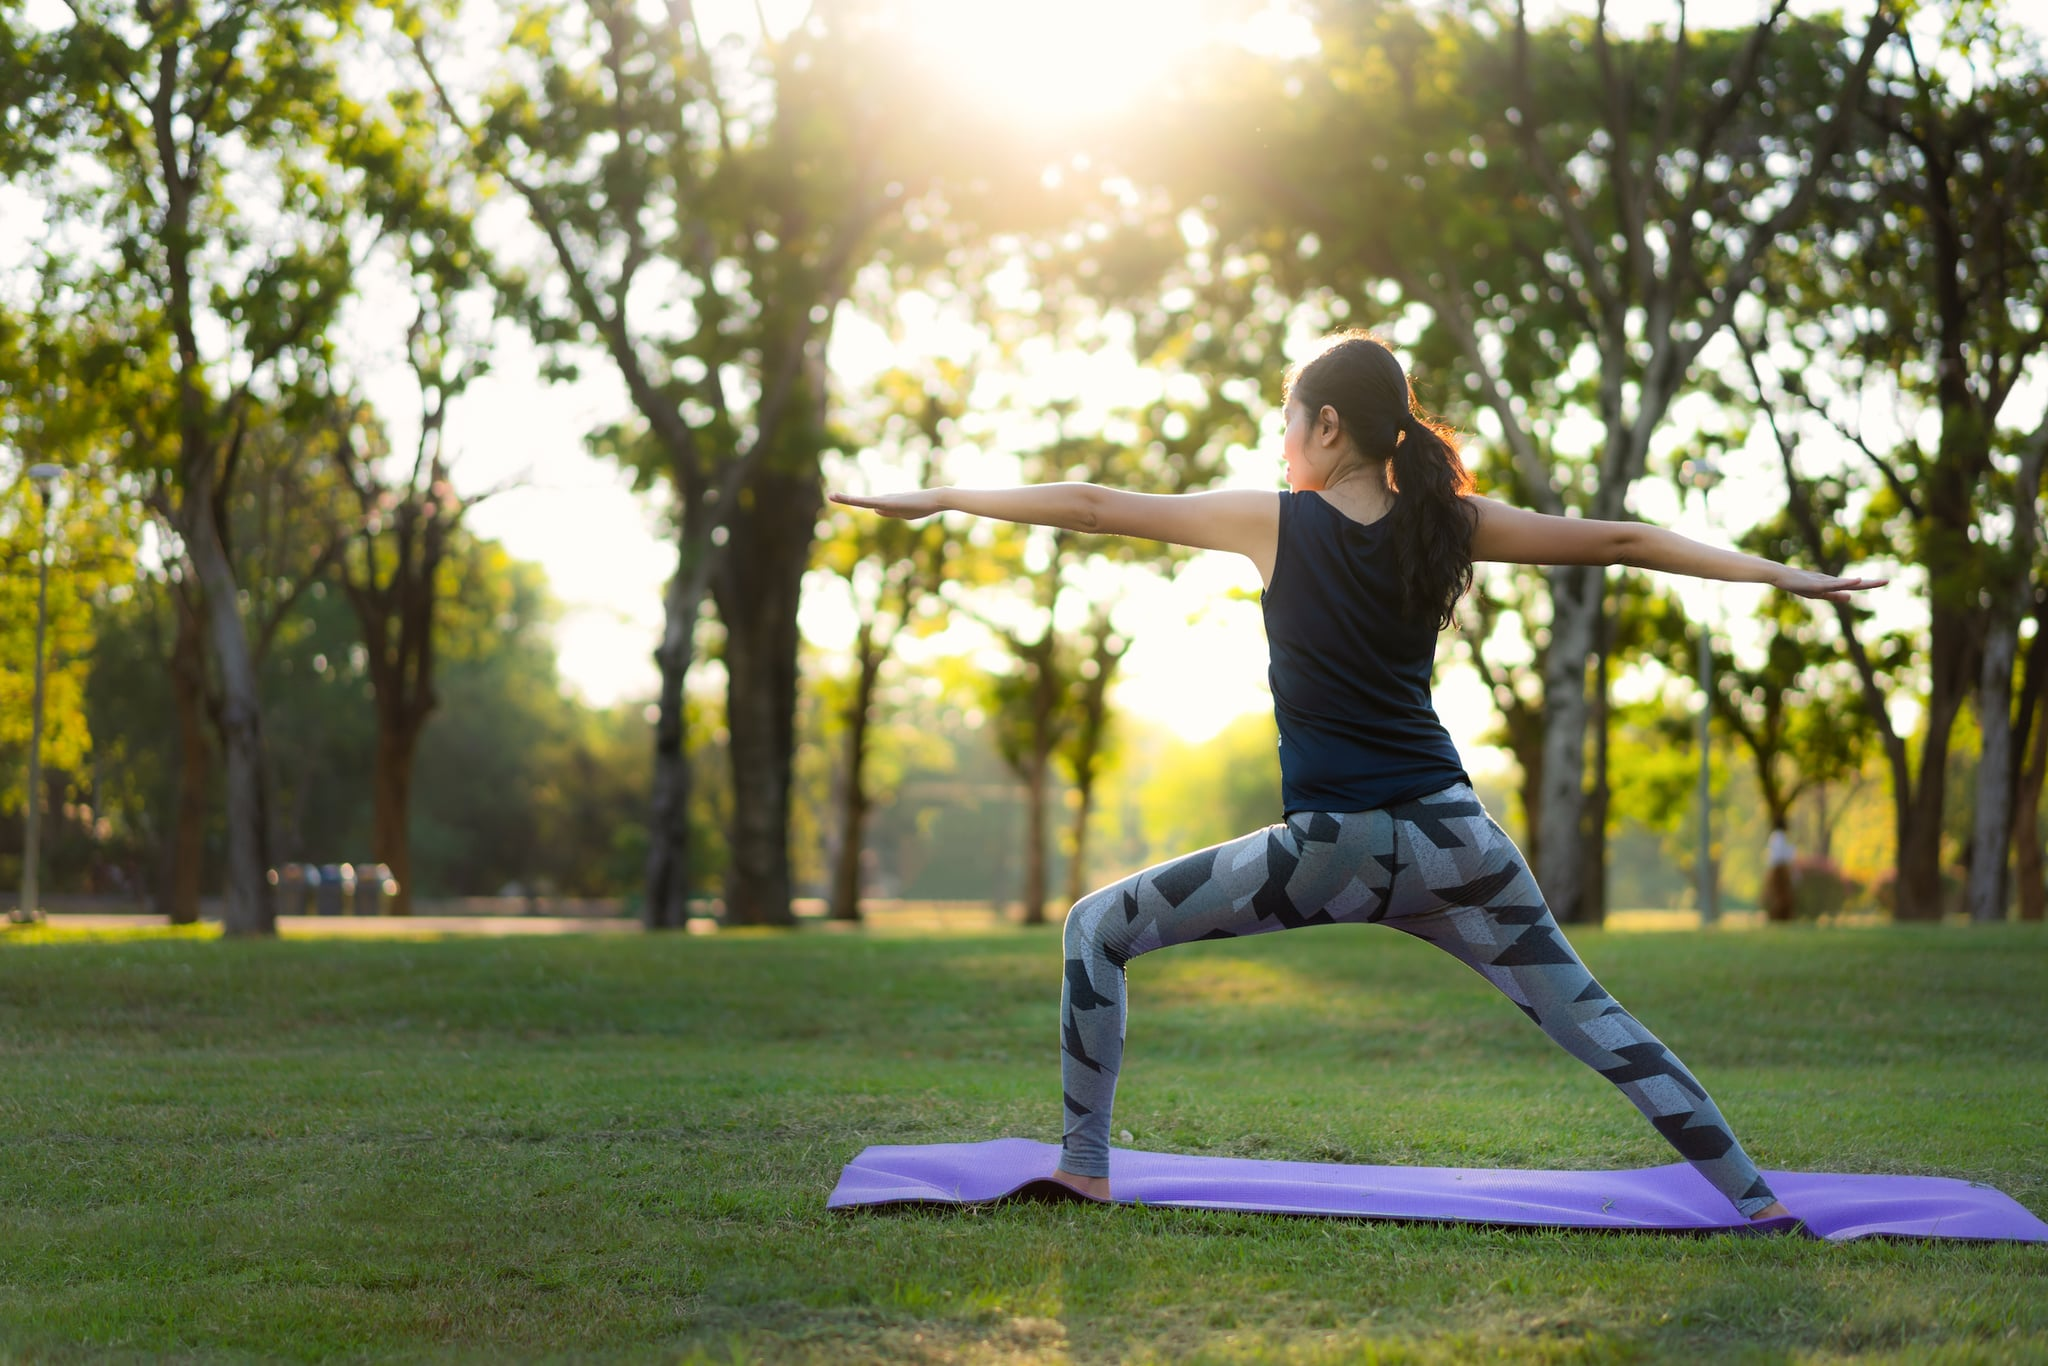 Beginners Guide For Yoga: How You can start with 4 simple rules